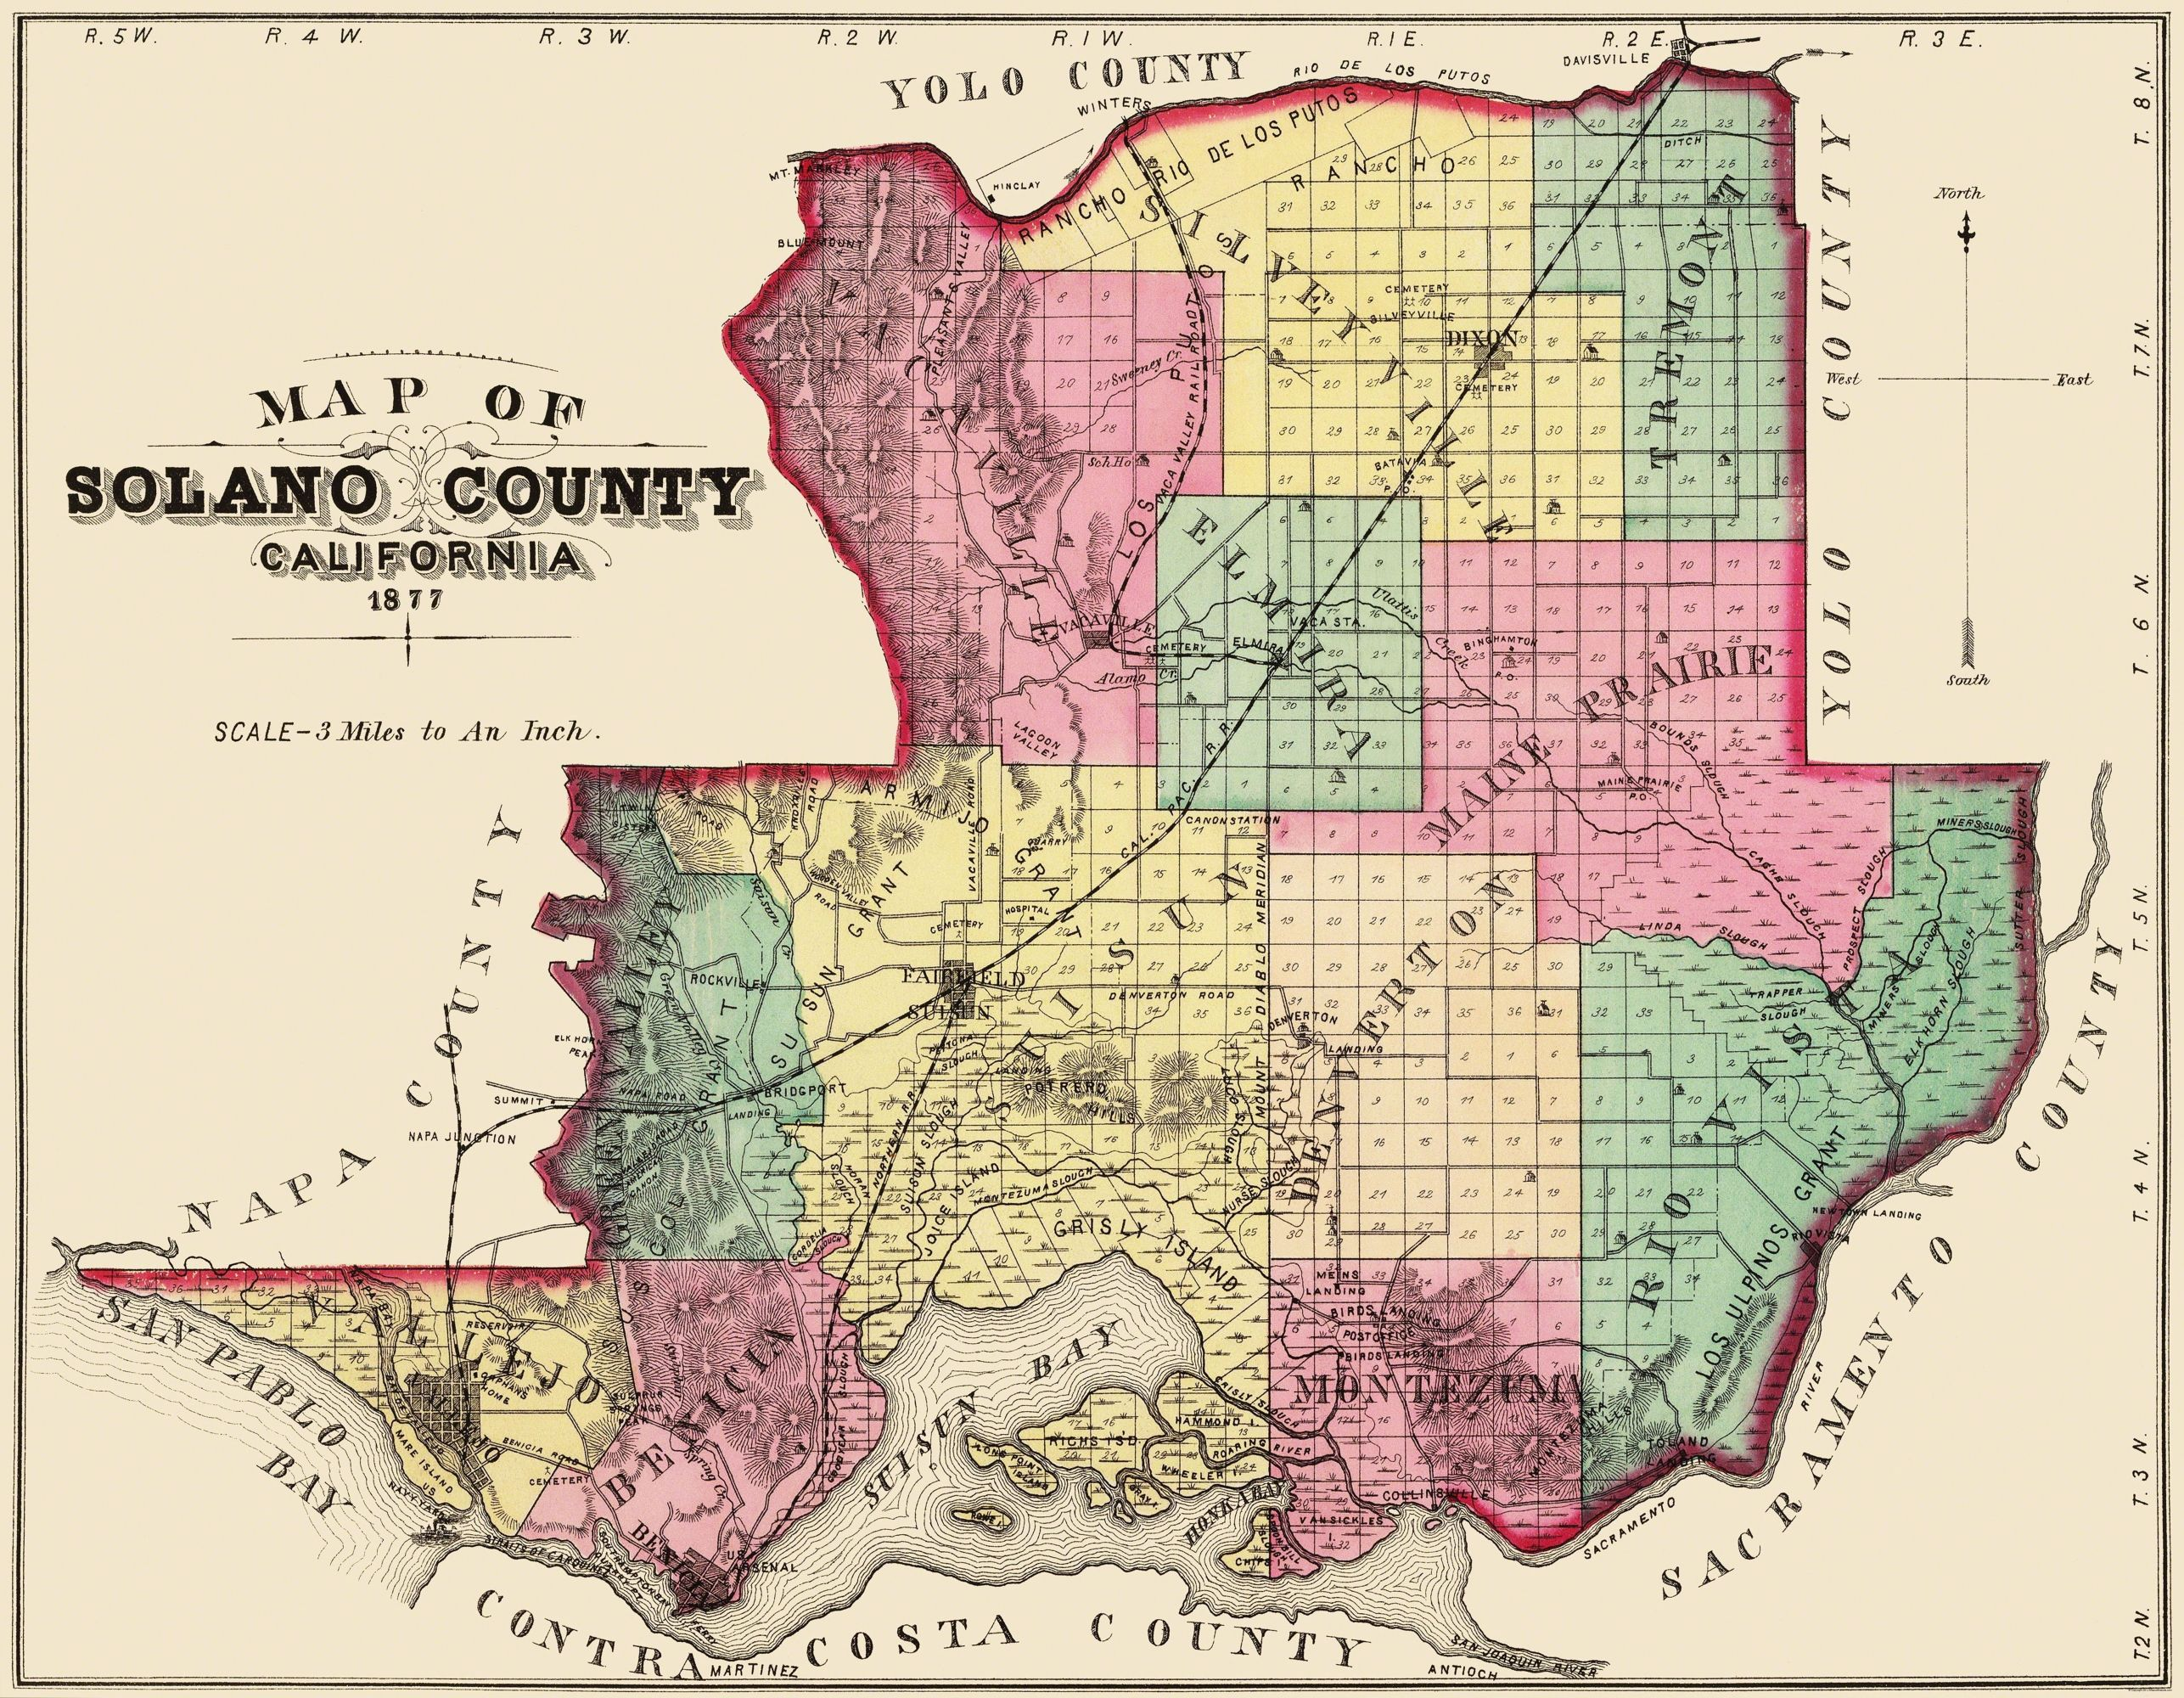 Map Of California Vacaville.Old County Map Solano Vacaville California 1877 29 56 X 23